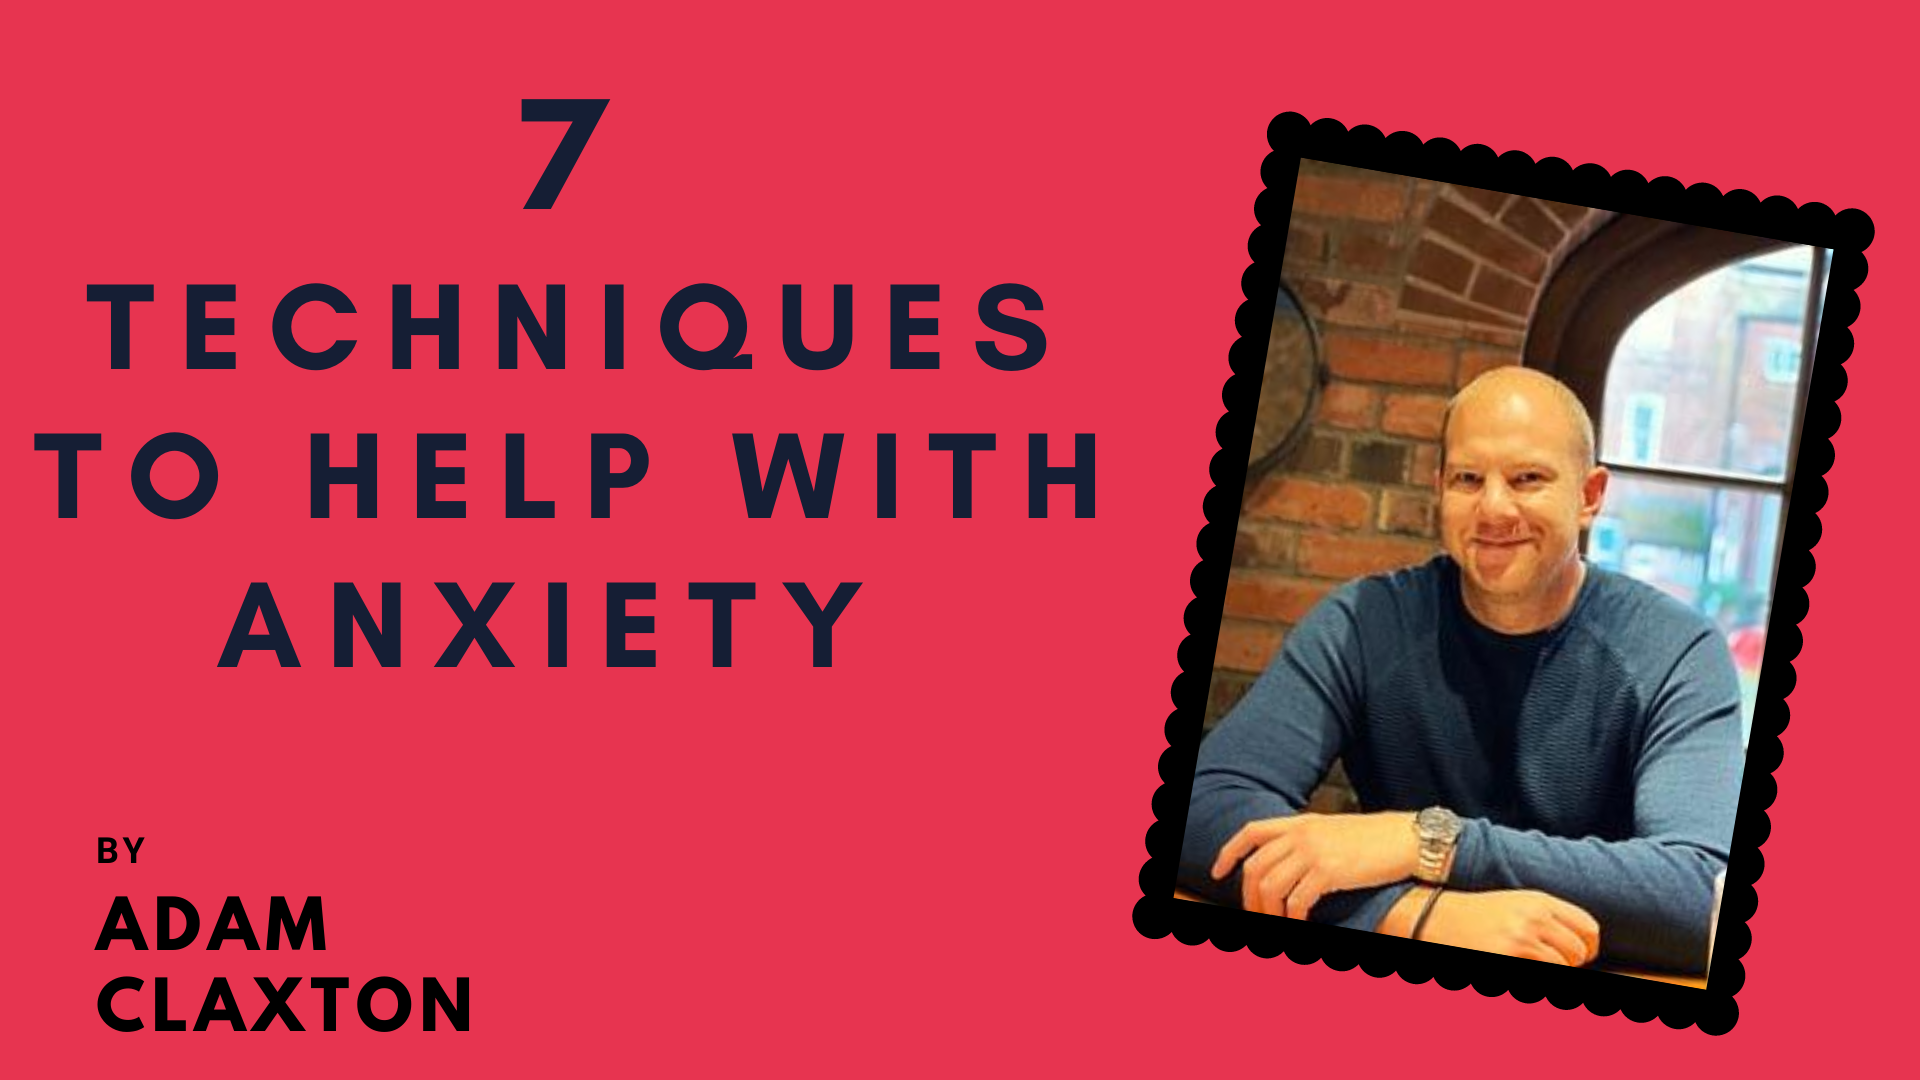 7 Techniques To Help With Anxiety